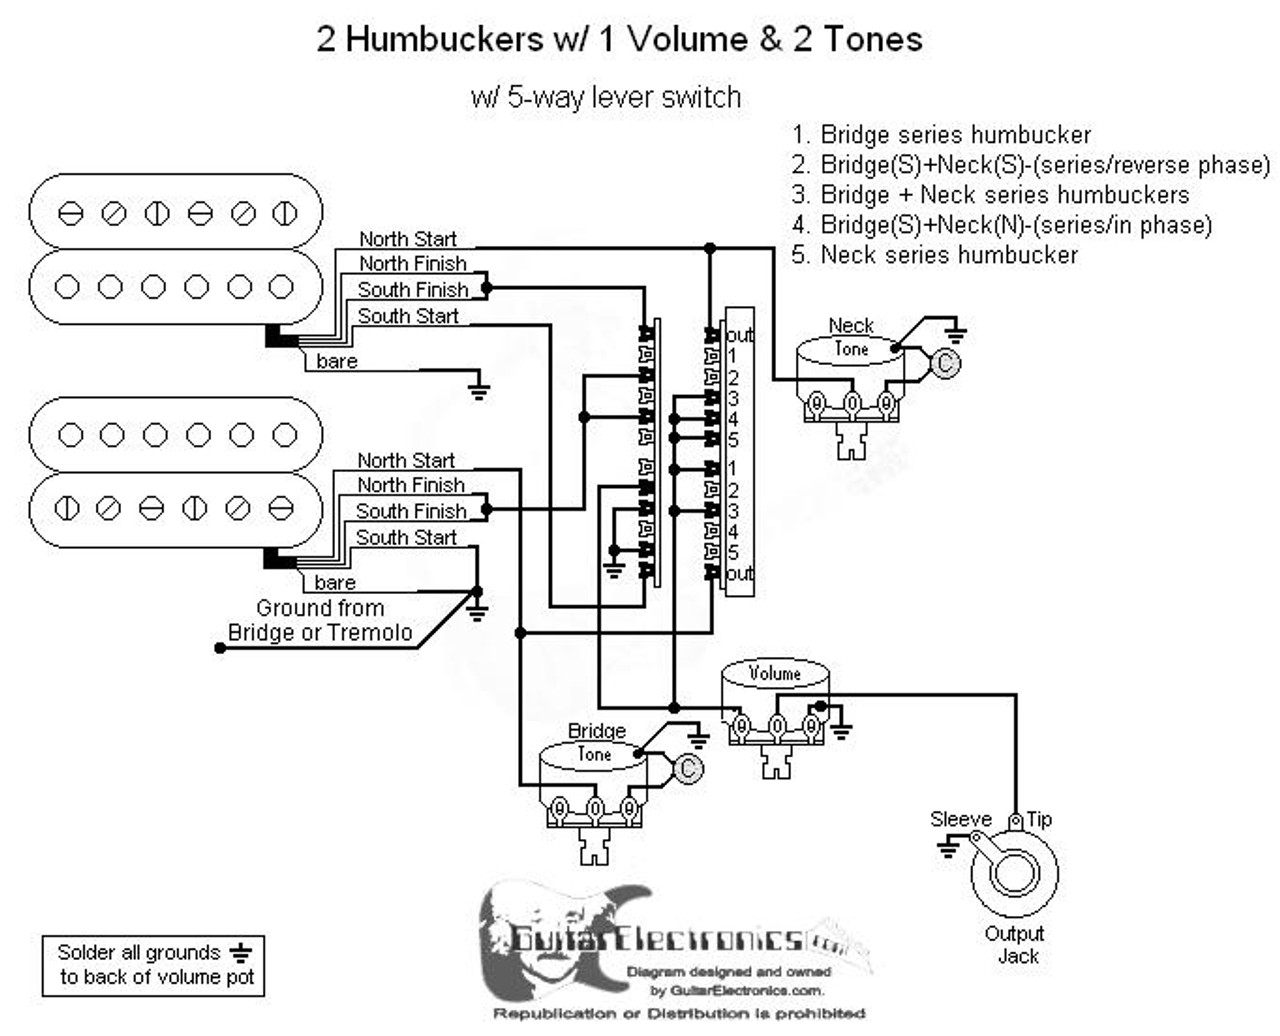 hight resolution of fender wiring schematic 2 pickups 1 volume 2 tone 5 way switch 2 humbuckers 5 way lever switch 1 volume 2 tone 03wd2hh5l12 03 46181 1470694495 jpg c